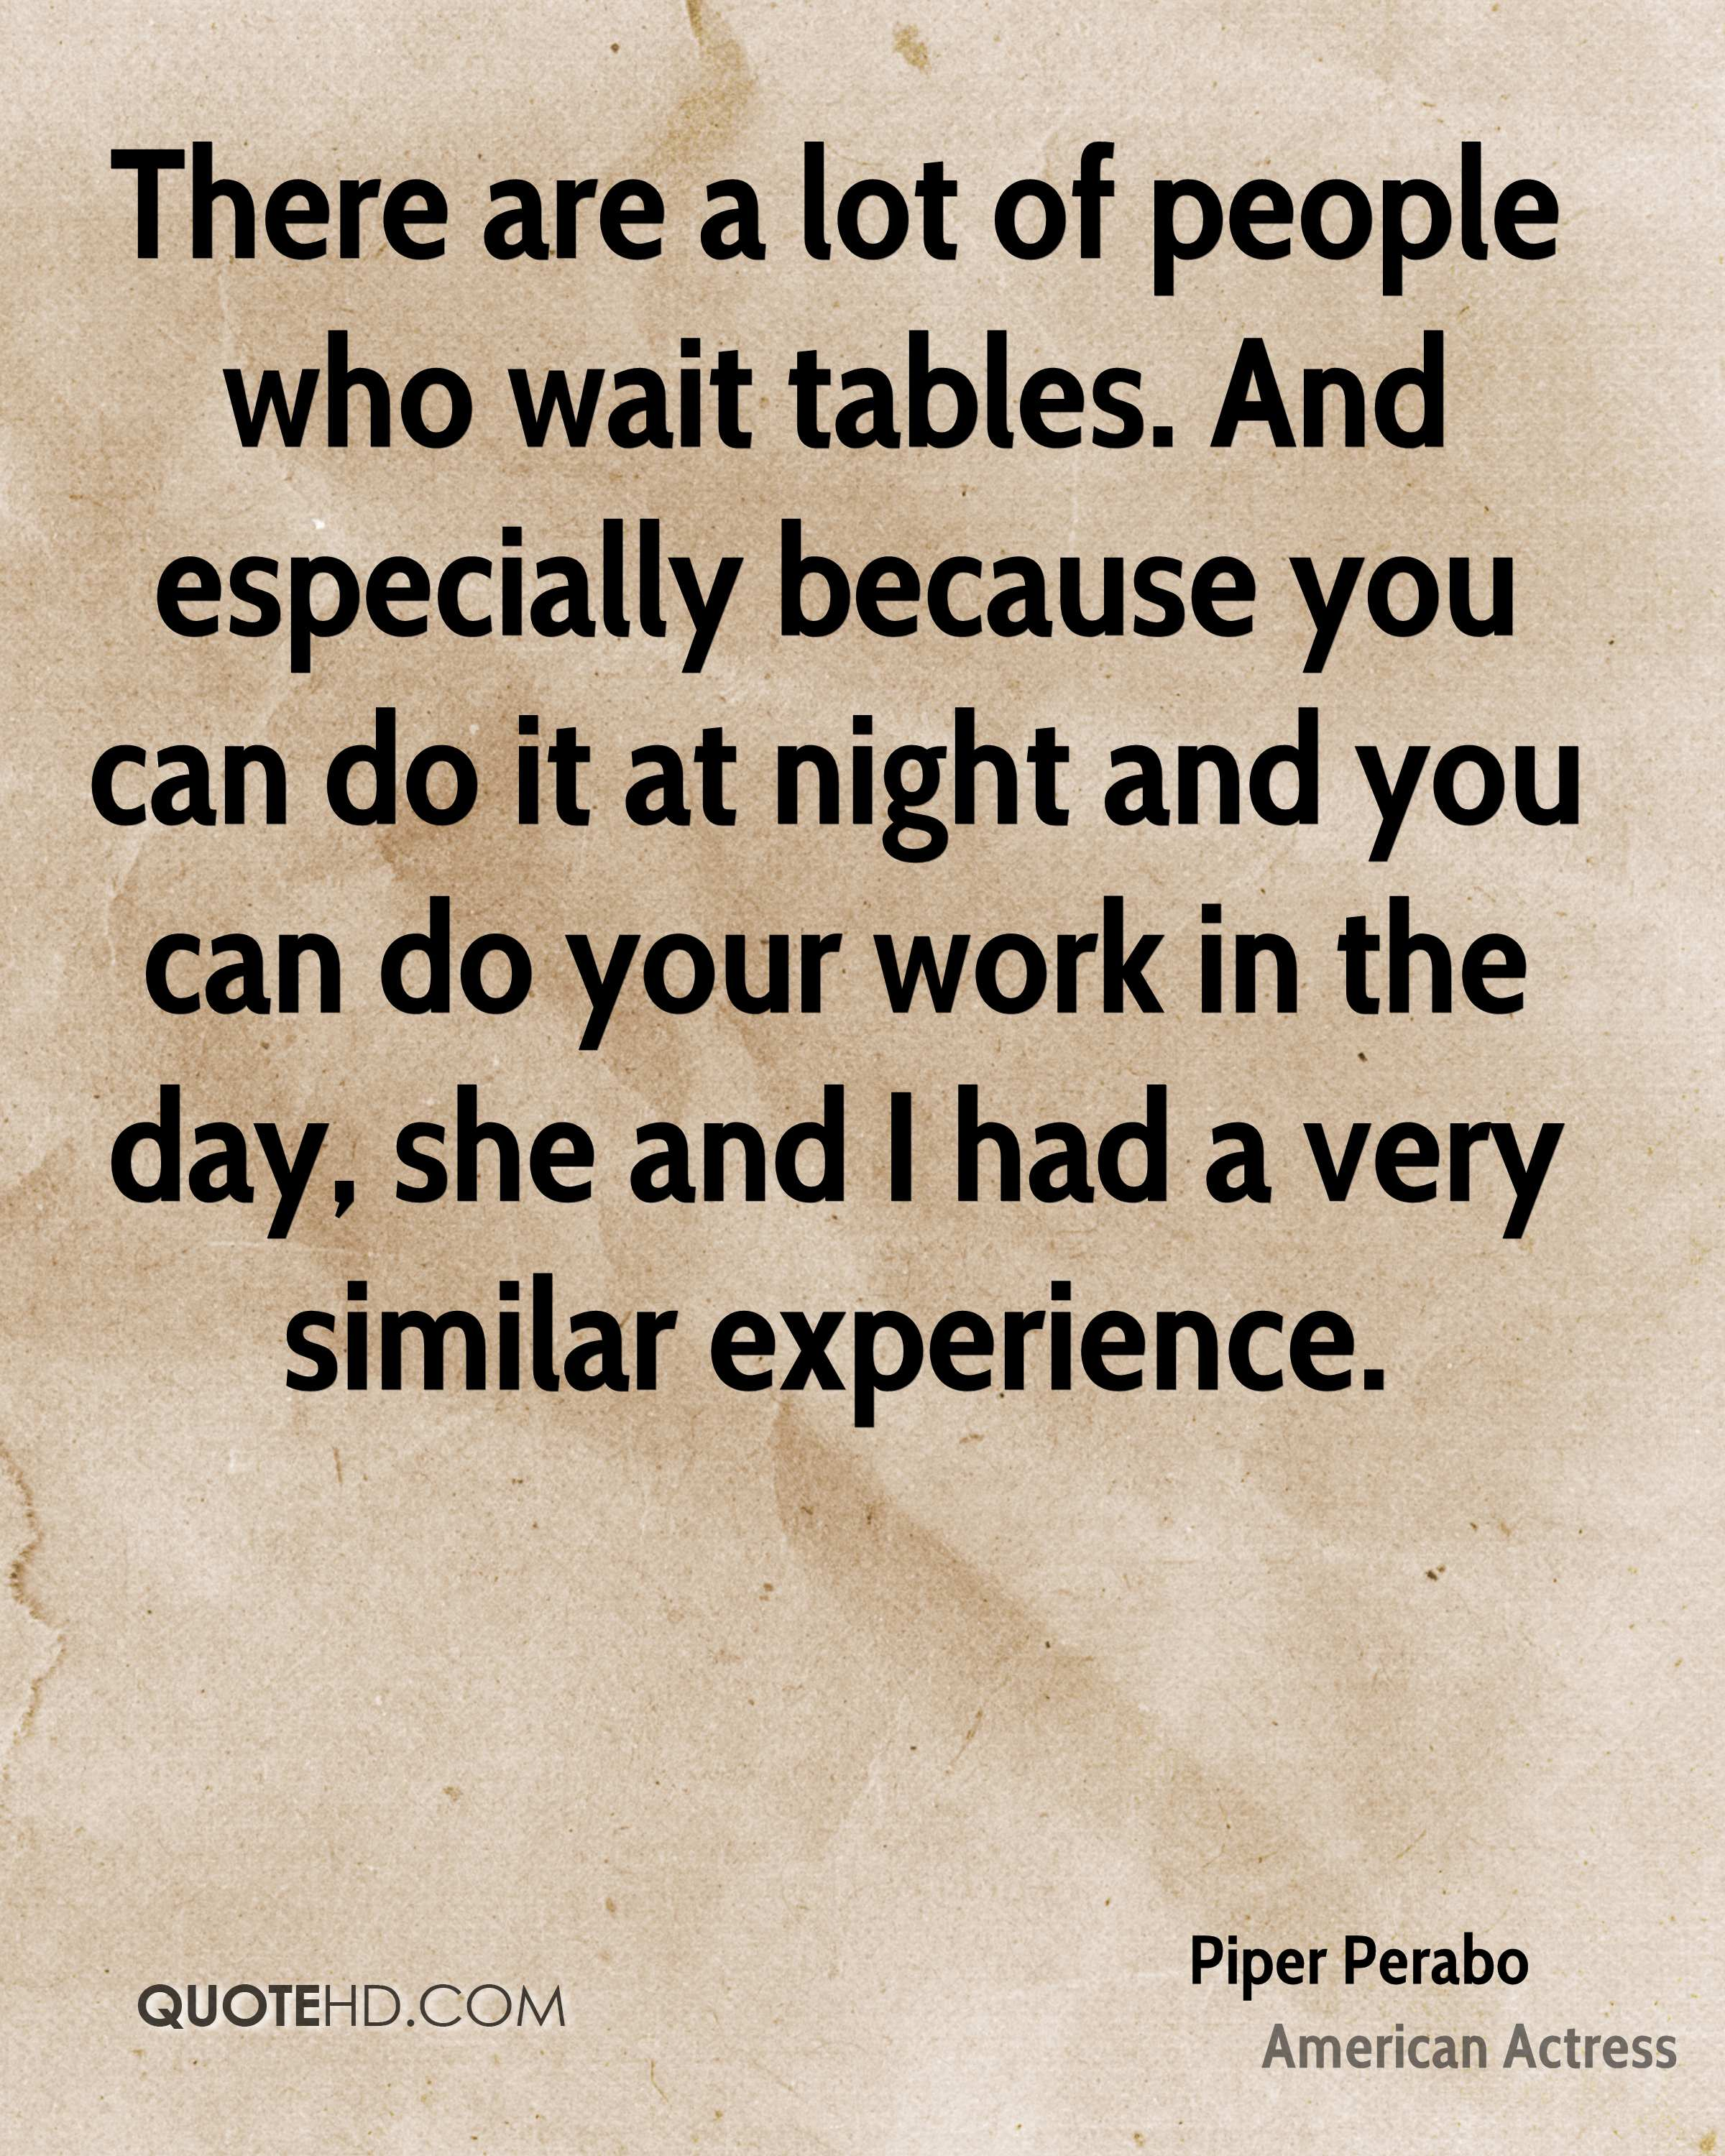 There are a lot of people who wait tables. And especially because you can do it at night and you can do your work in the day, she and I had a very similar experience.